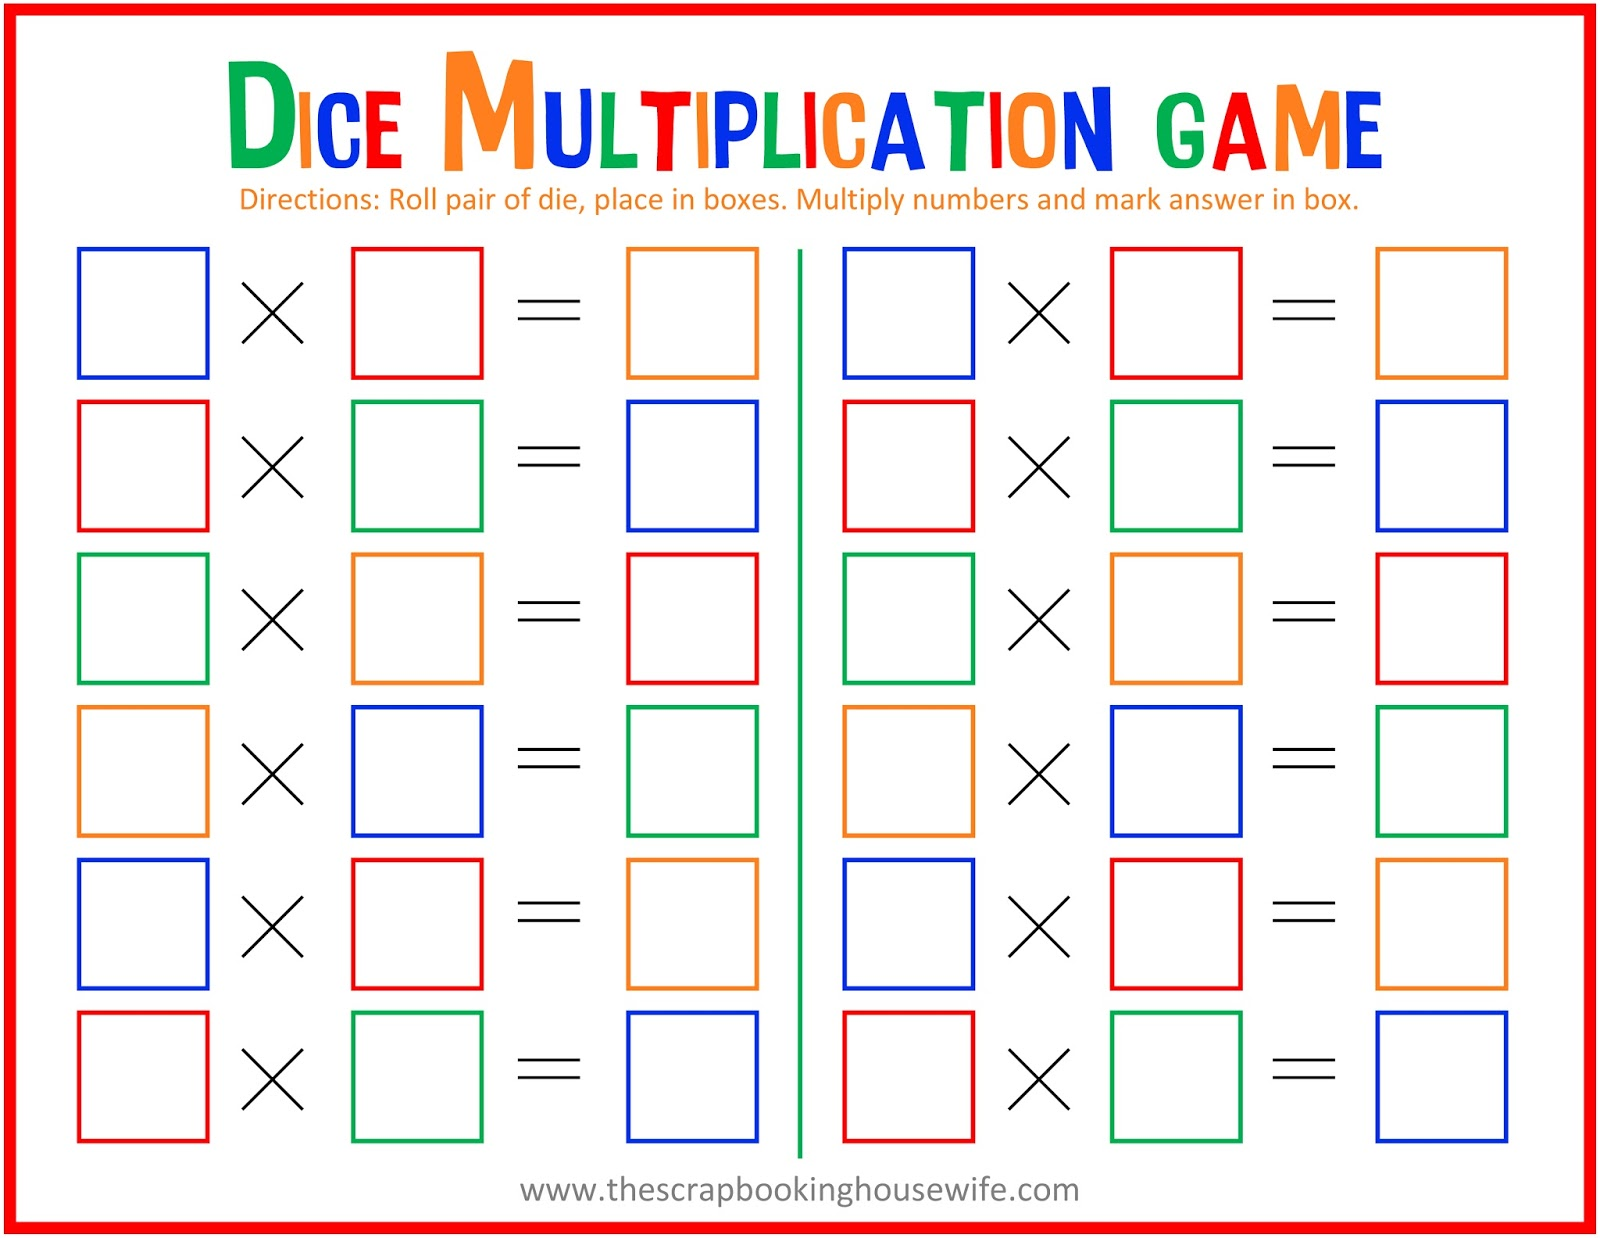 Ellabella Designs: Dice Multiplication MATH Game for Kids - Free ...